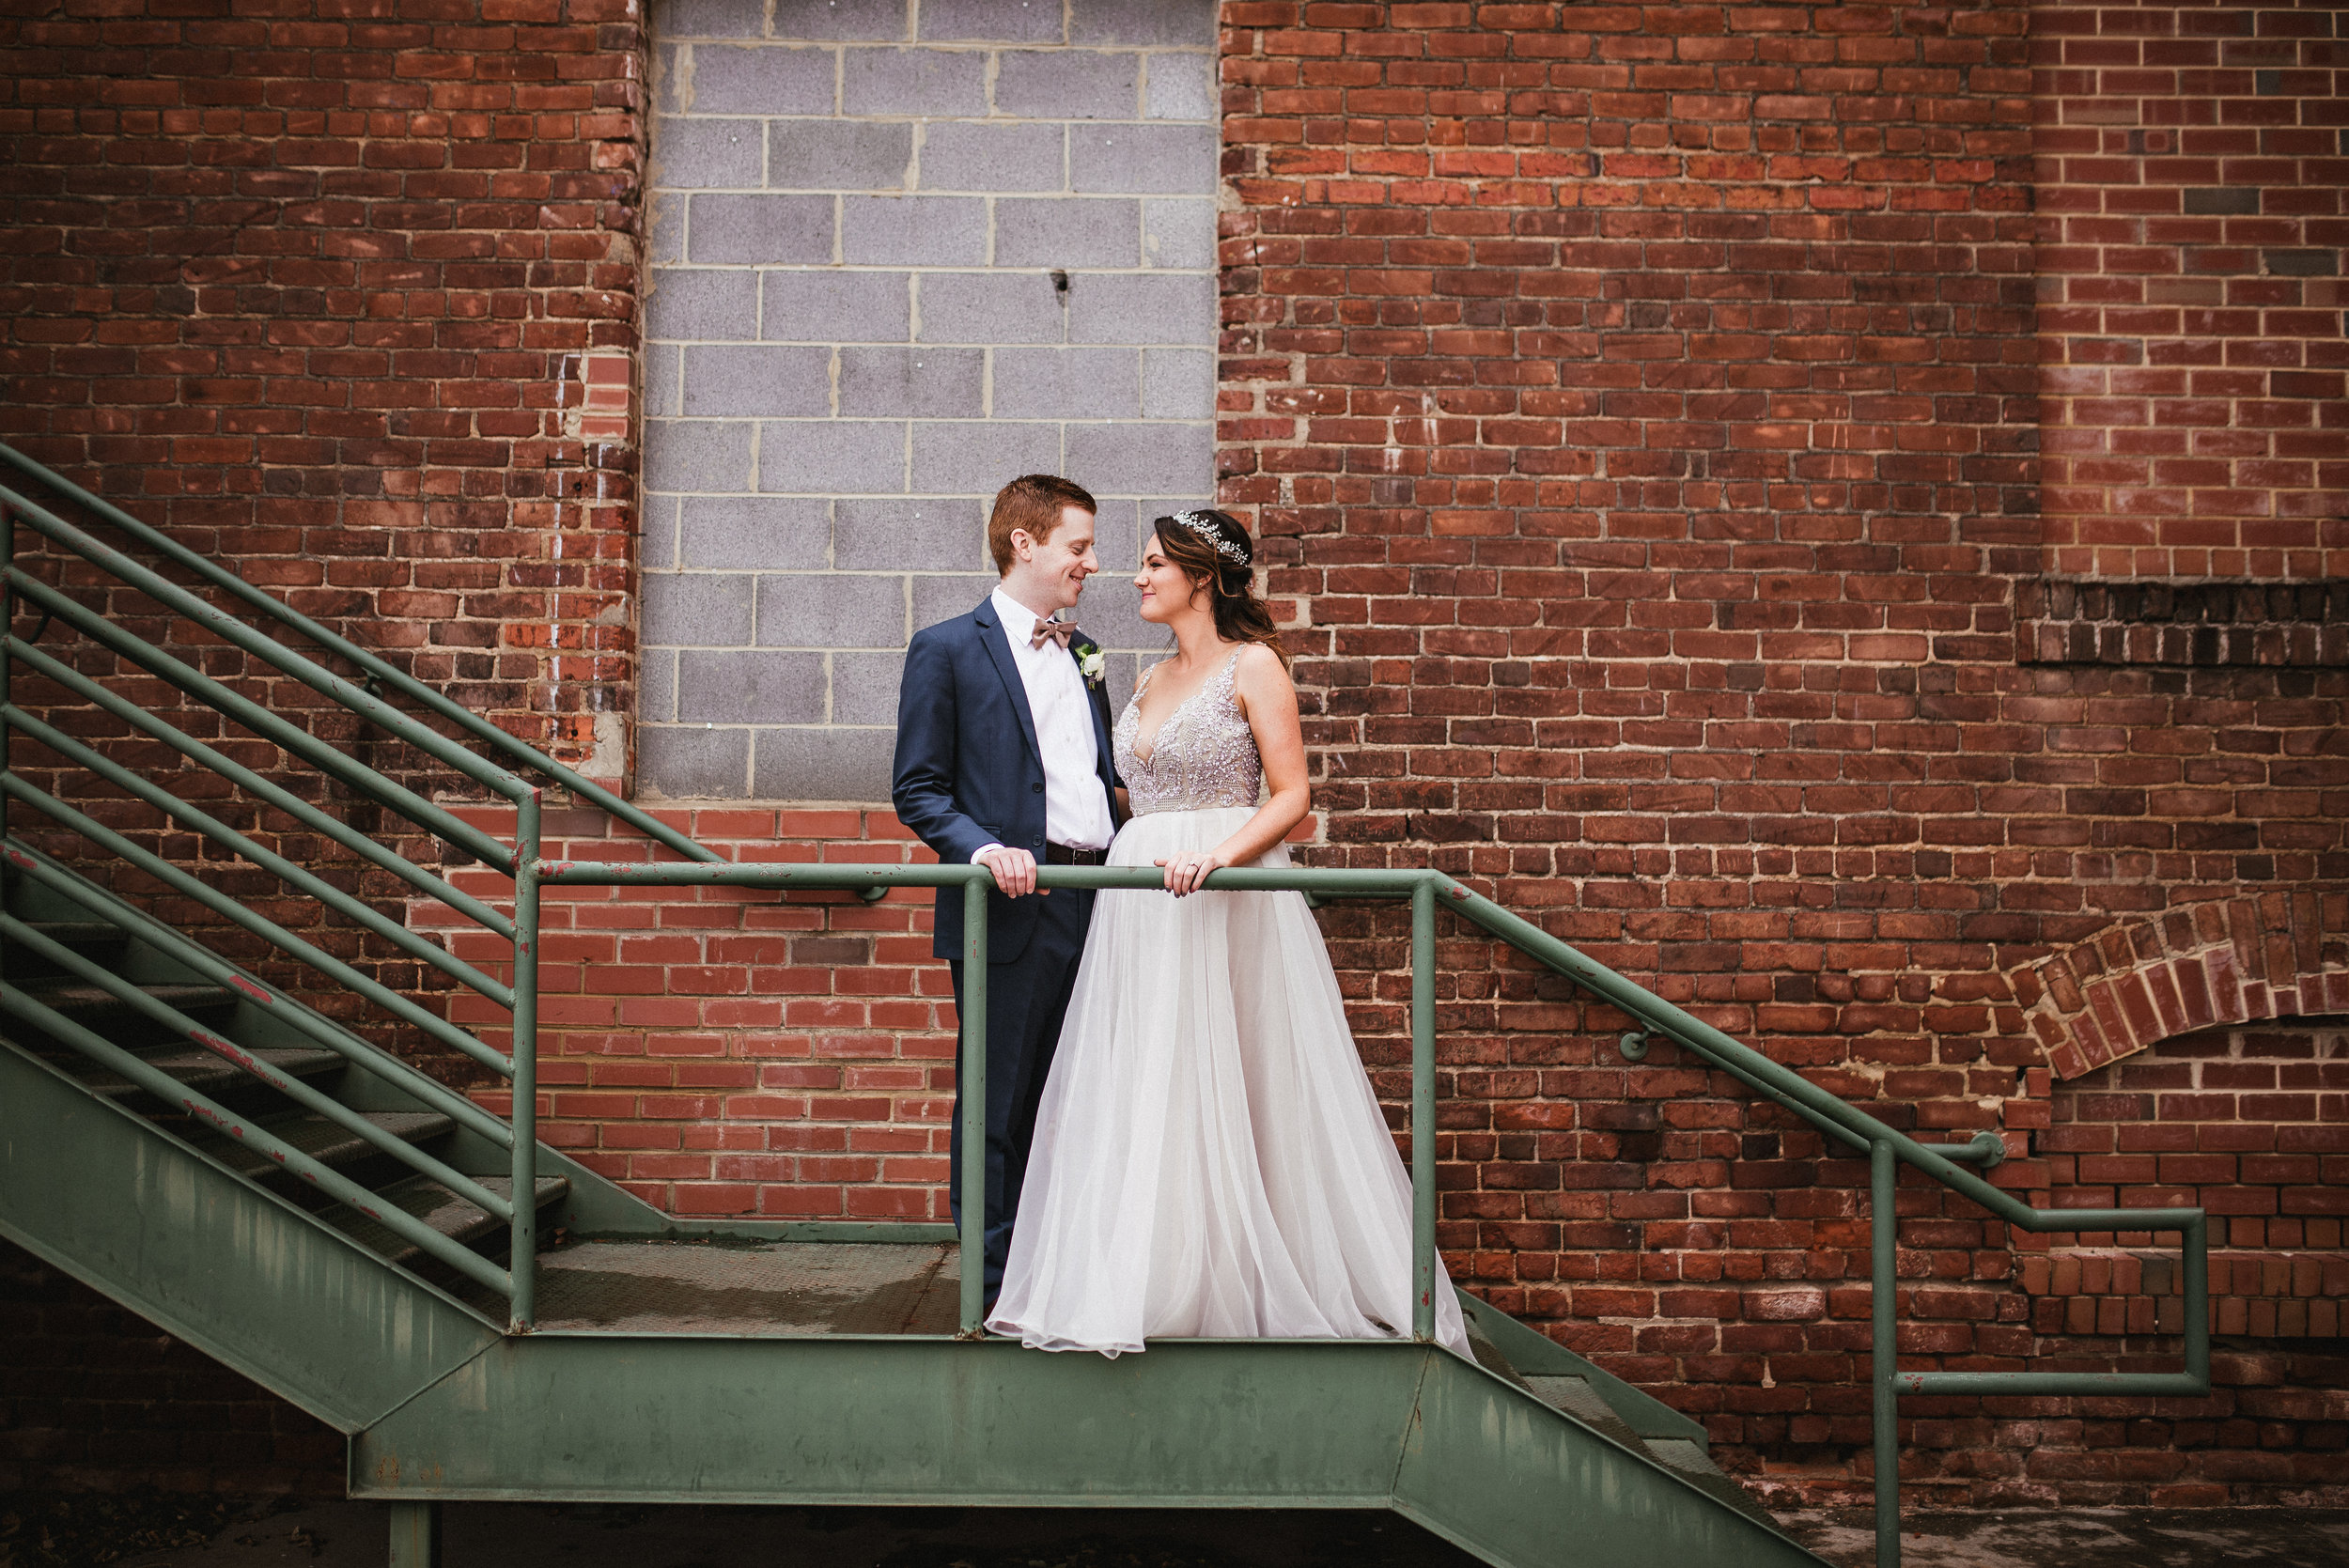 durham wedding - durham wedding photographer - durham photographer